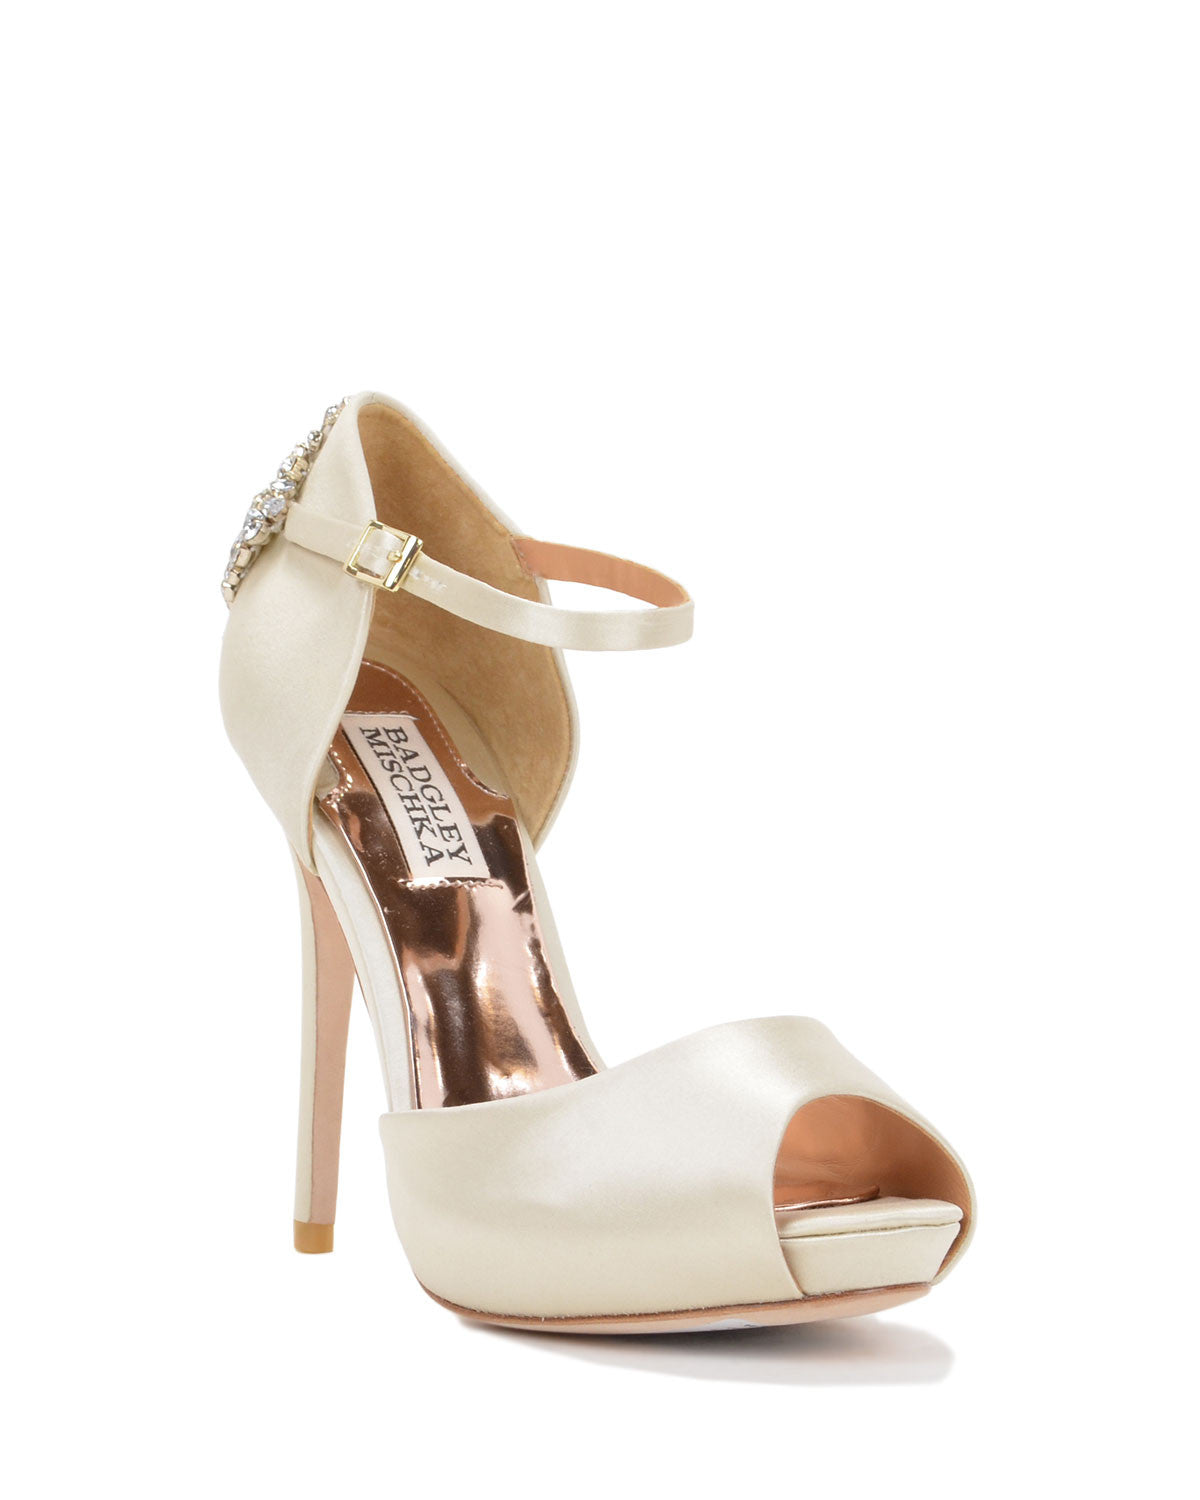 Badgley Mischka - Gene - Ivory - Wedding Shoes Sydney